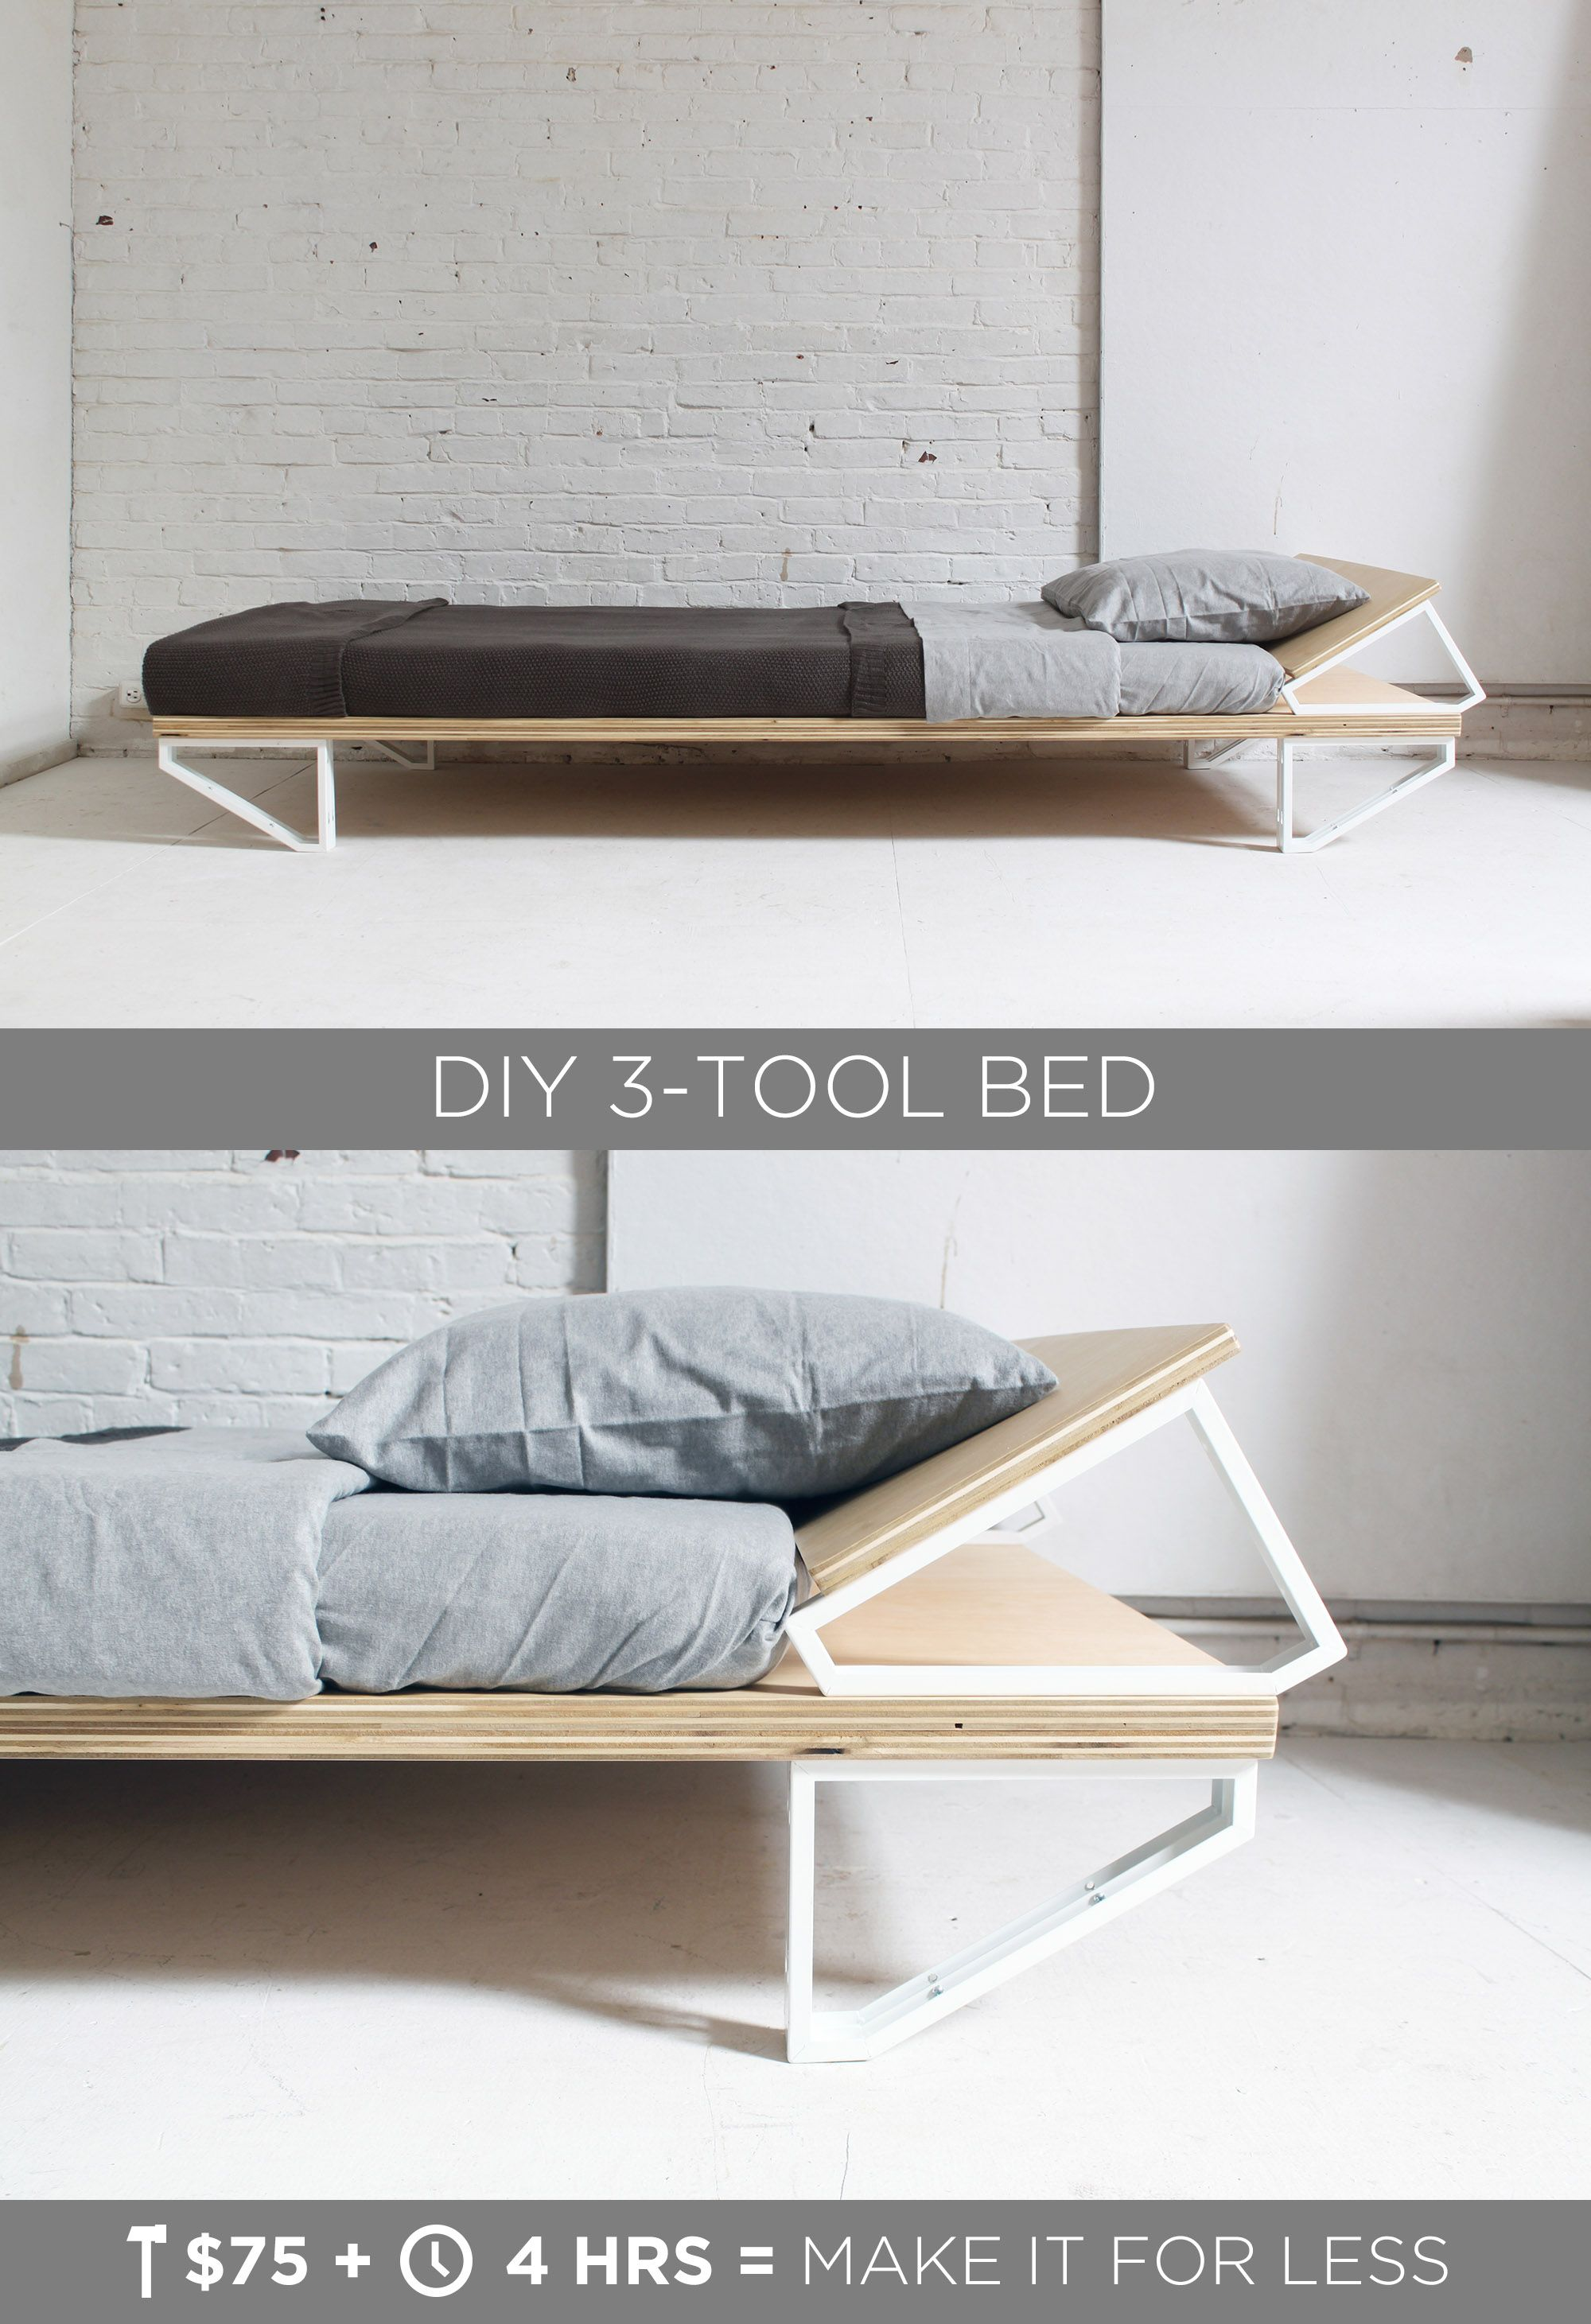 This Diy Modern Bed Is Made From A Sheet Of Plywood And 10